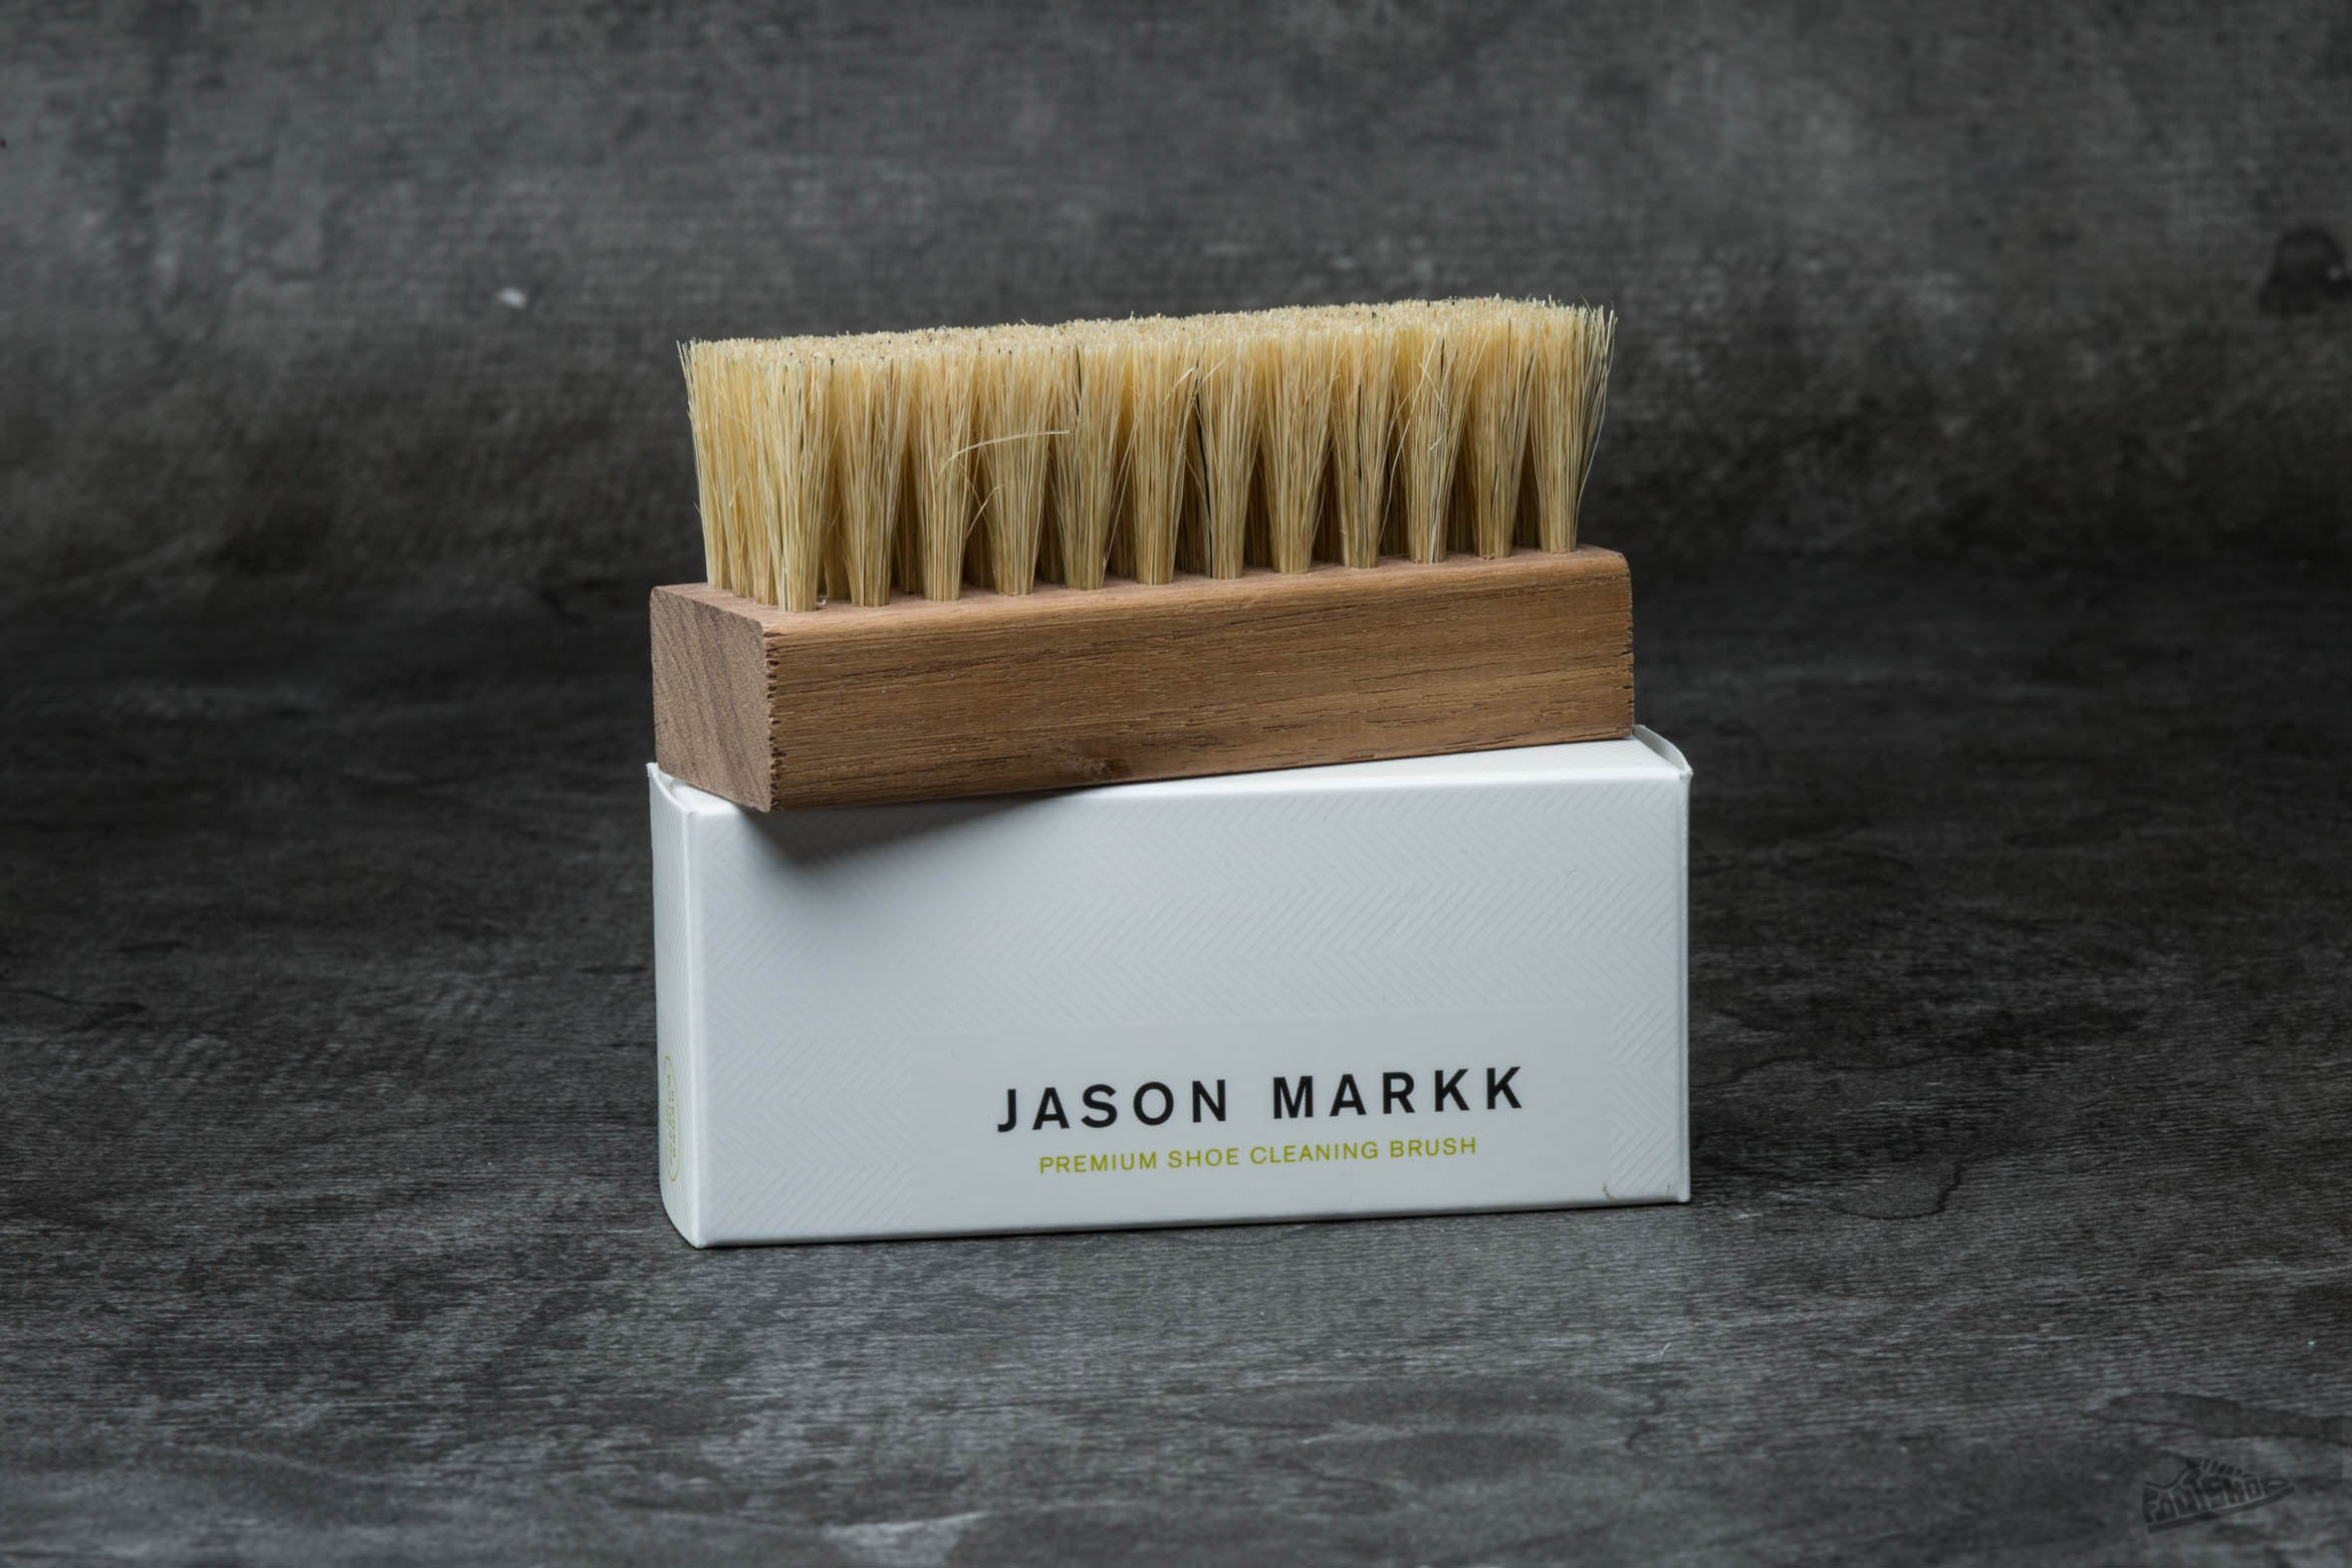 Jason Markk Premium Shoe Cleaning Brush - 4648